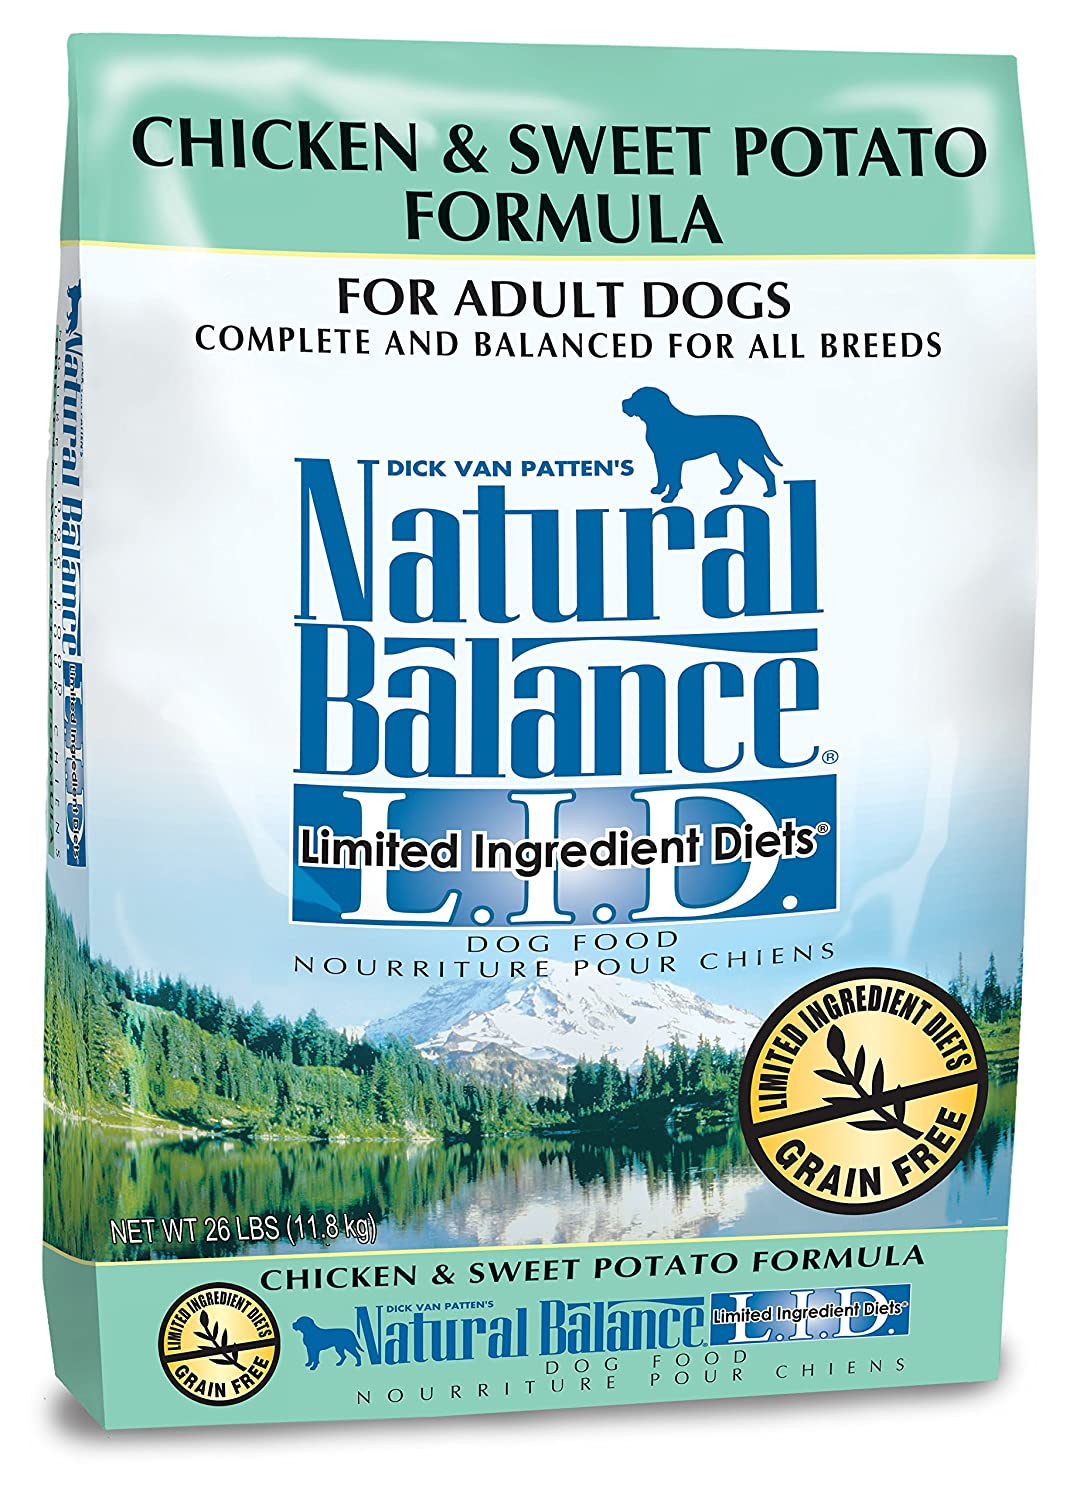 Natural Balance Limited Ingredient Diets Dry Dog Food - Chicken & Sweet Potato Formula